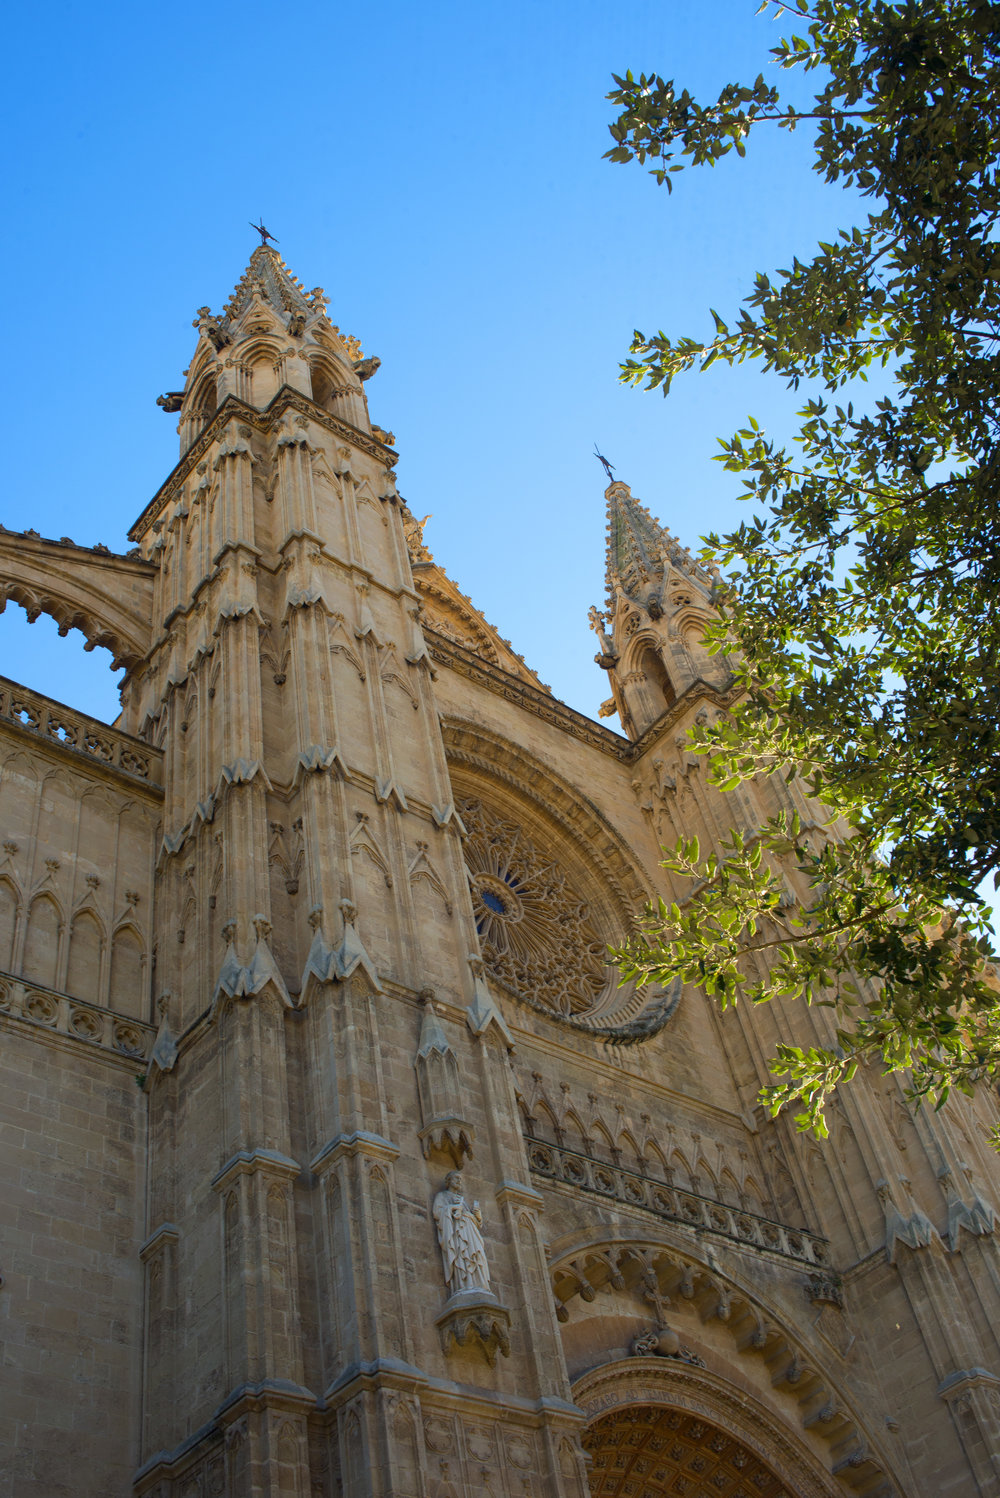 Front of the Cathedral of Santa Maria of Palma, Mallorca Spain.